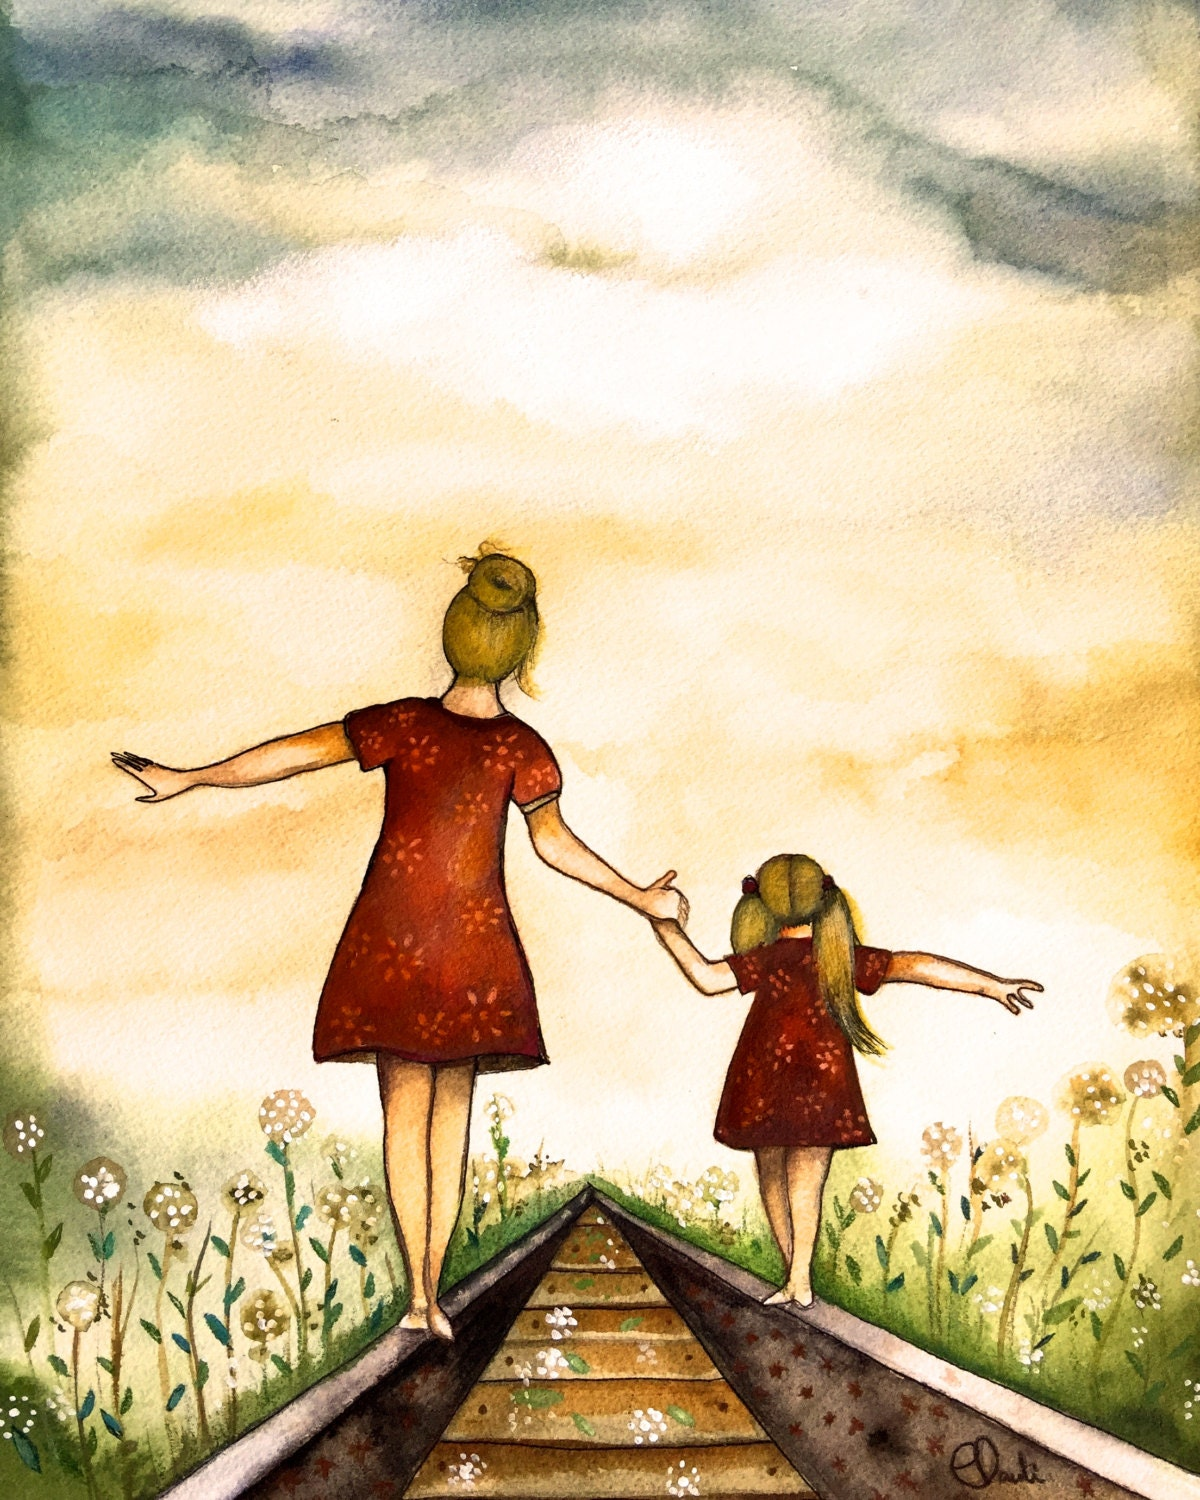 Blonde Mother and daughter our path art print | Etsy